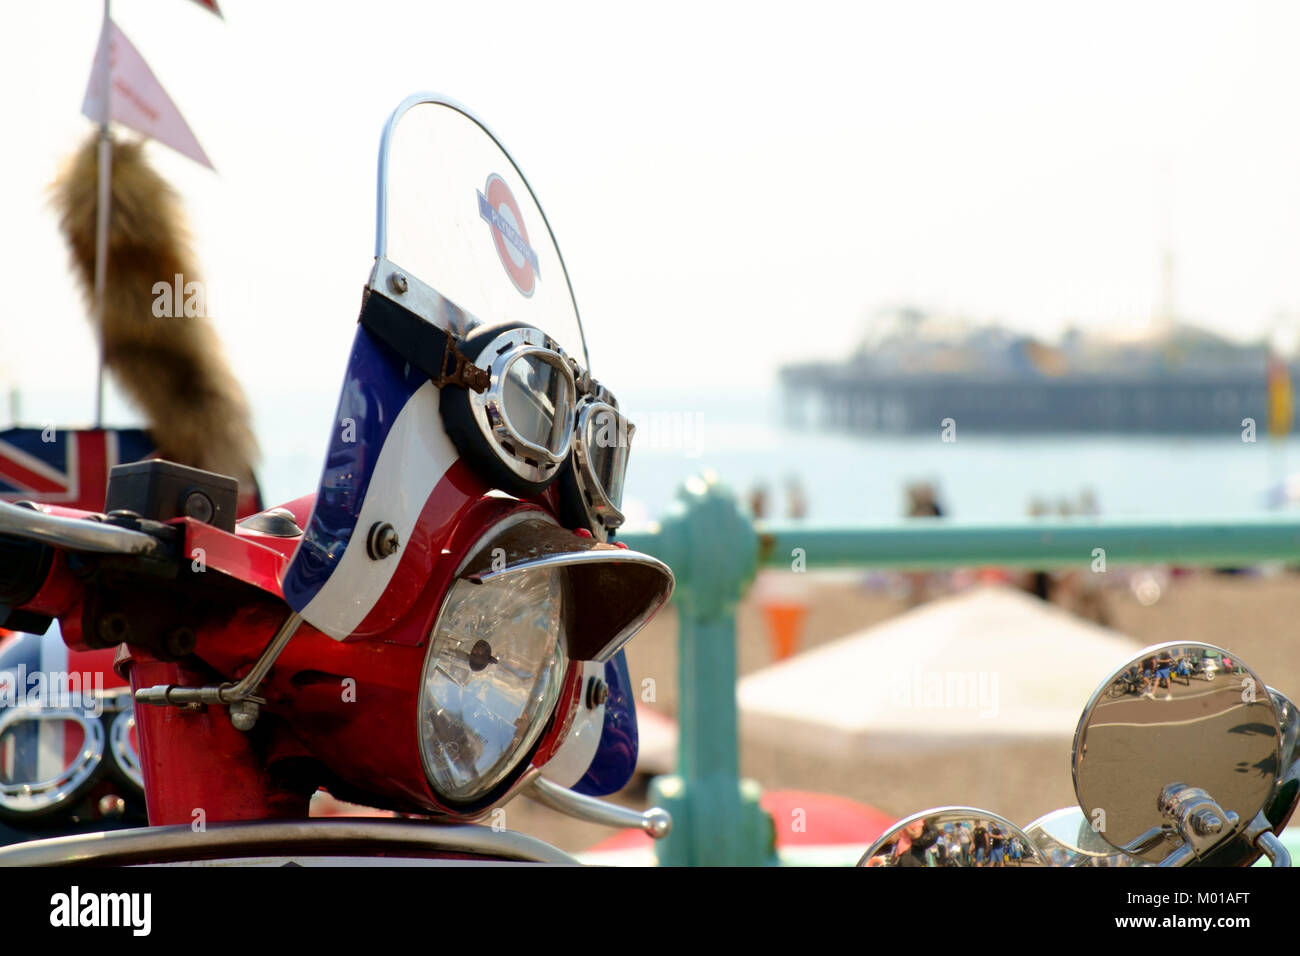 Mods Vespa scooter on Brighton seafront - Stock Image